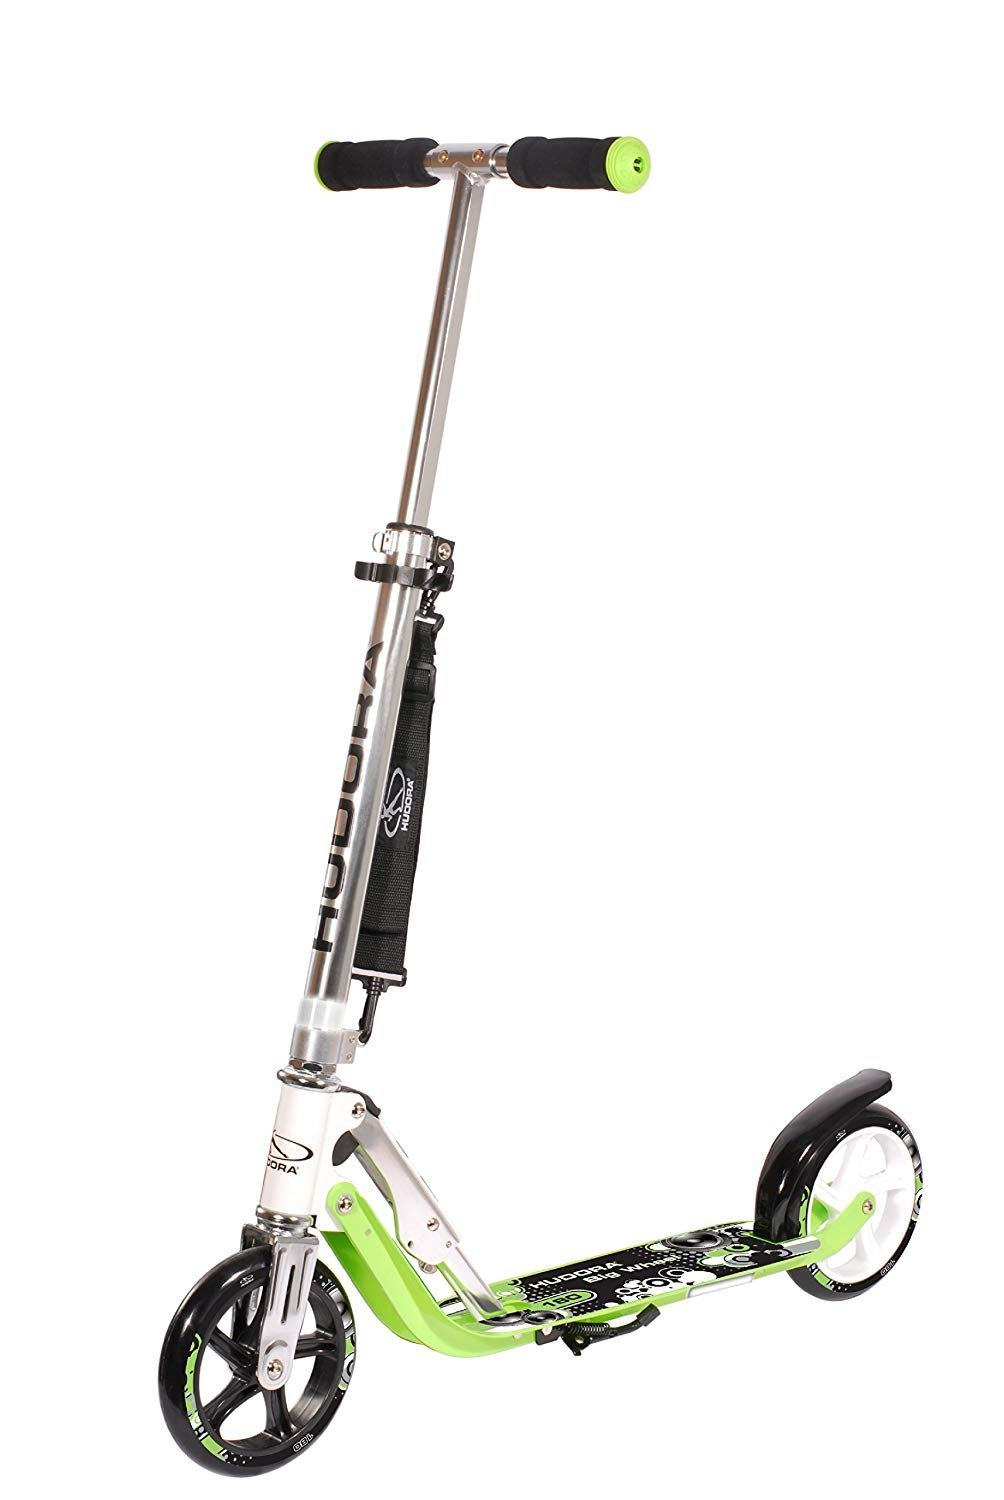 HUDORA Kick Scooter Adult Teen Kid For 8-15 Years Old With 180MM Big Wheels, Adjustable Height, Easy Folding Big Wheels Scooter-Green by HUDORA